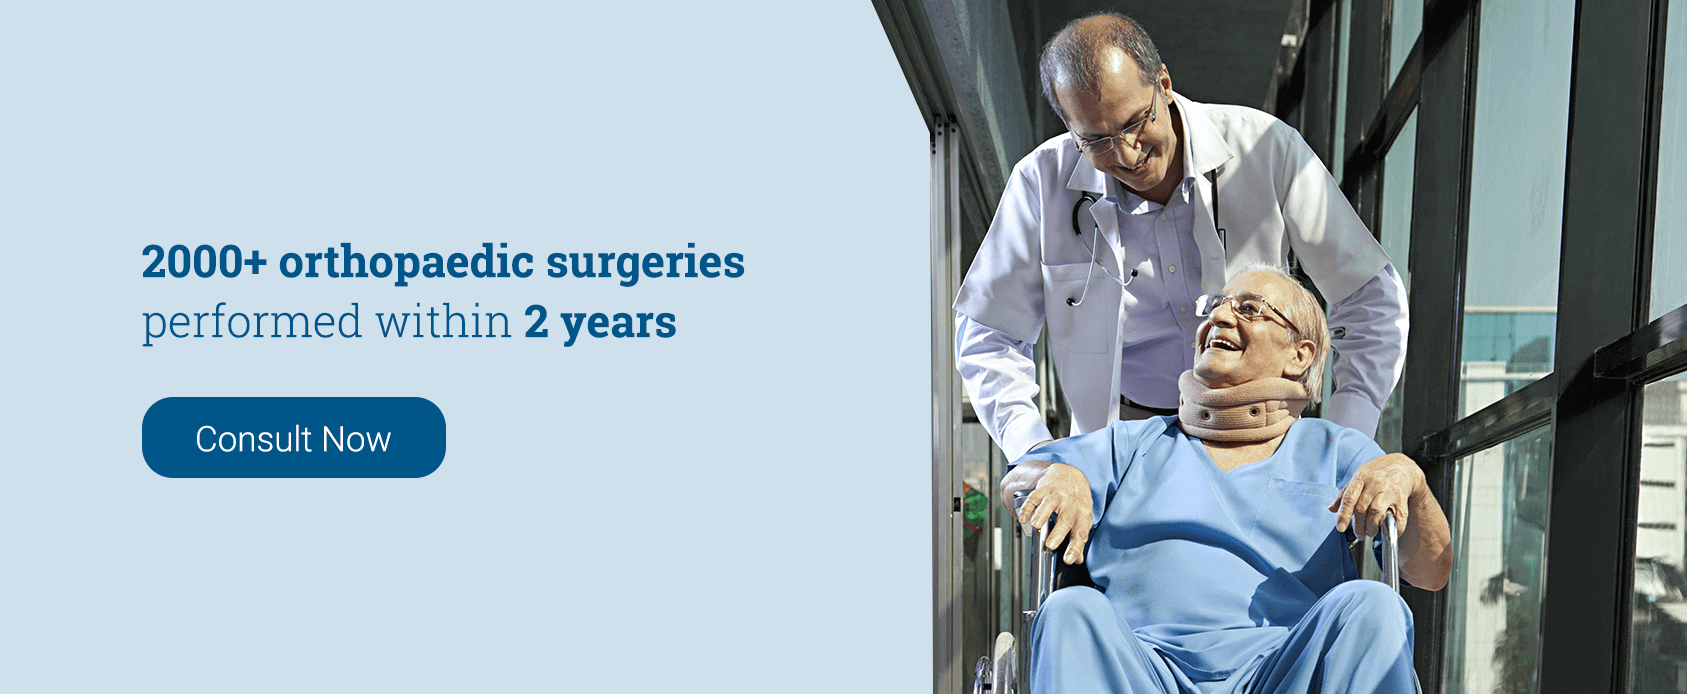 2000+ Orthopaedic surgeries performed within 2 years